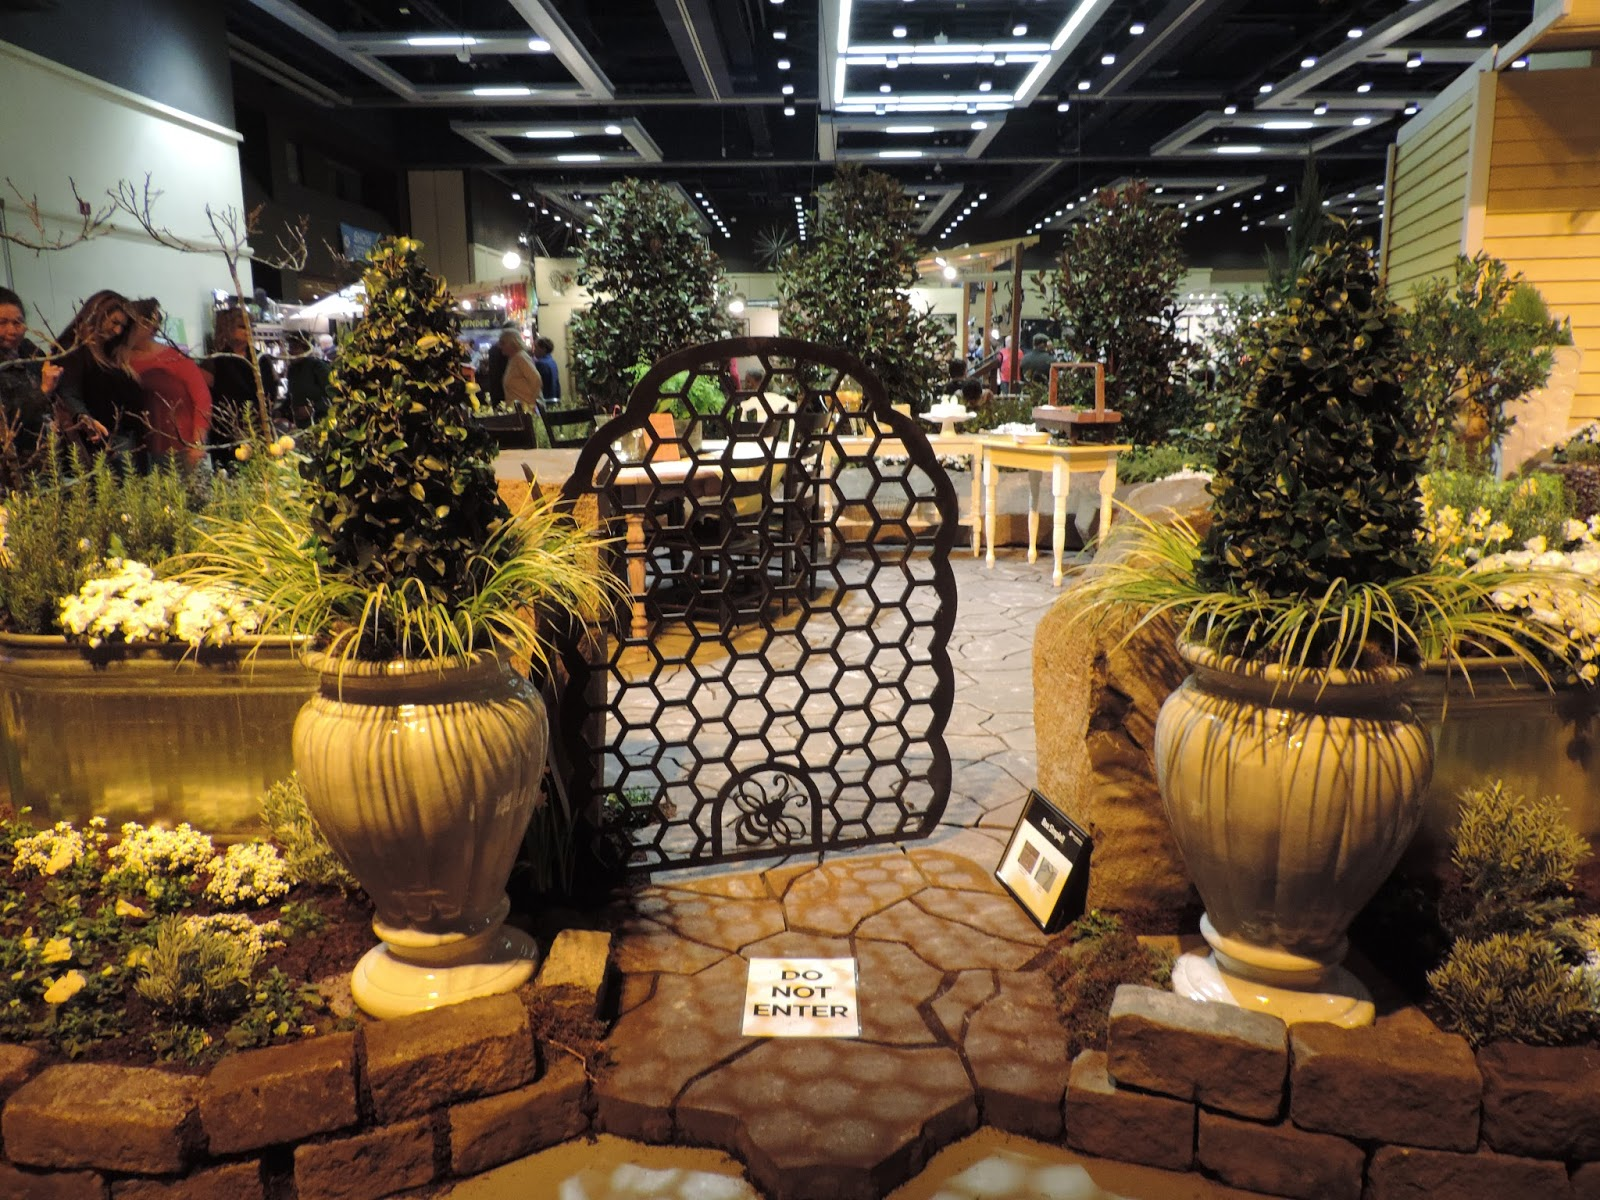 Beatrice Euphemie: Northwest Flower and Garden Show - Part II